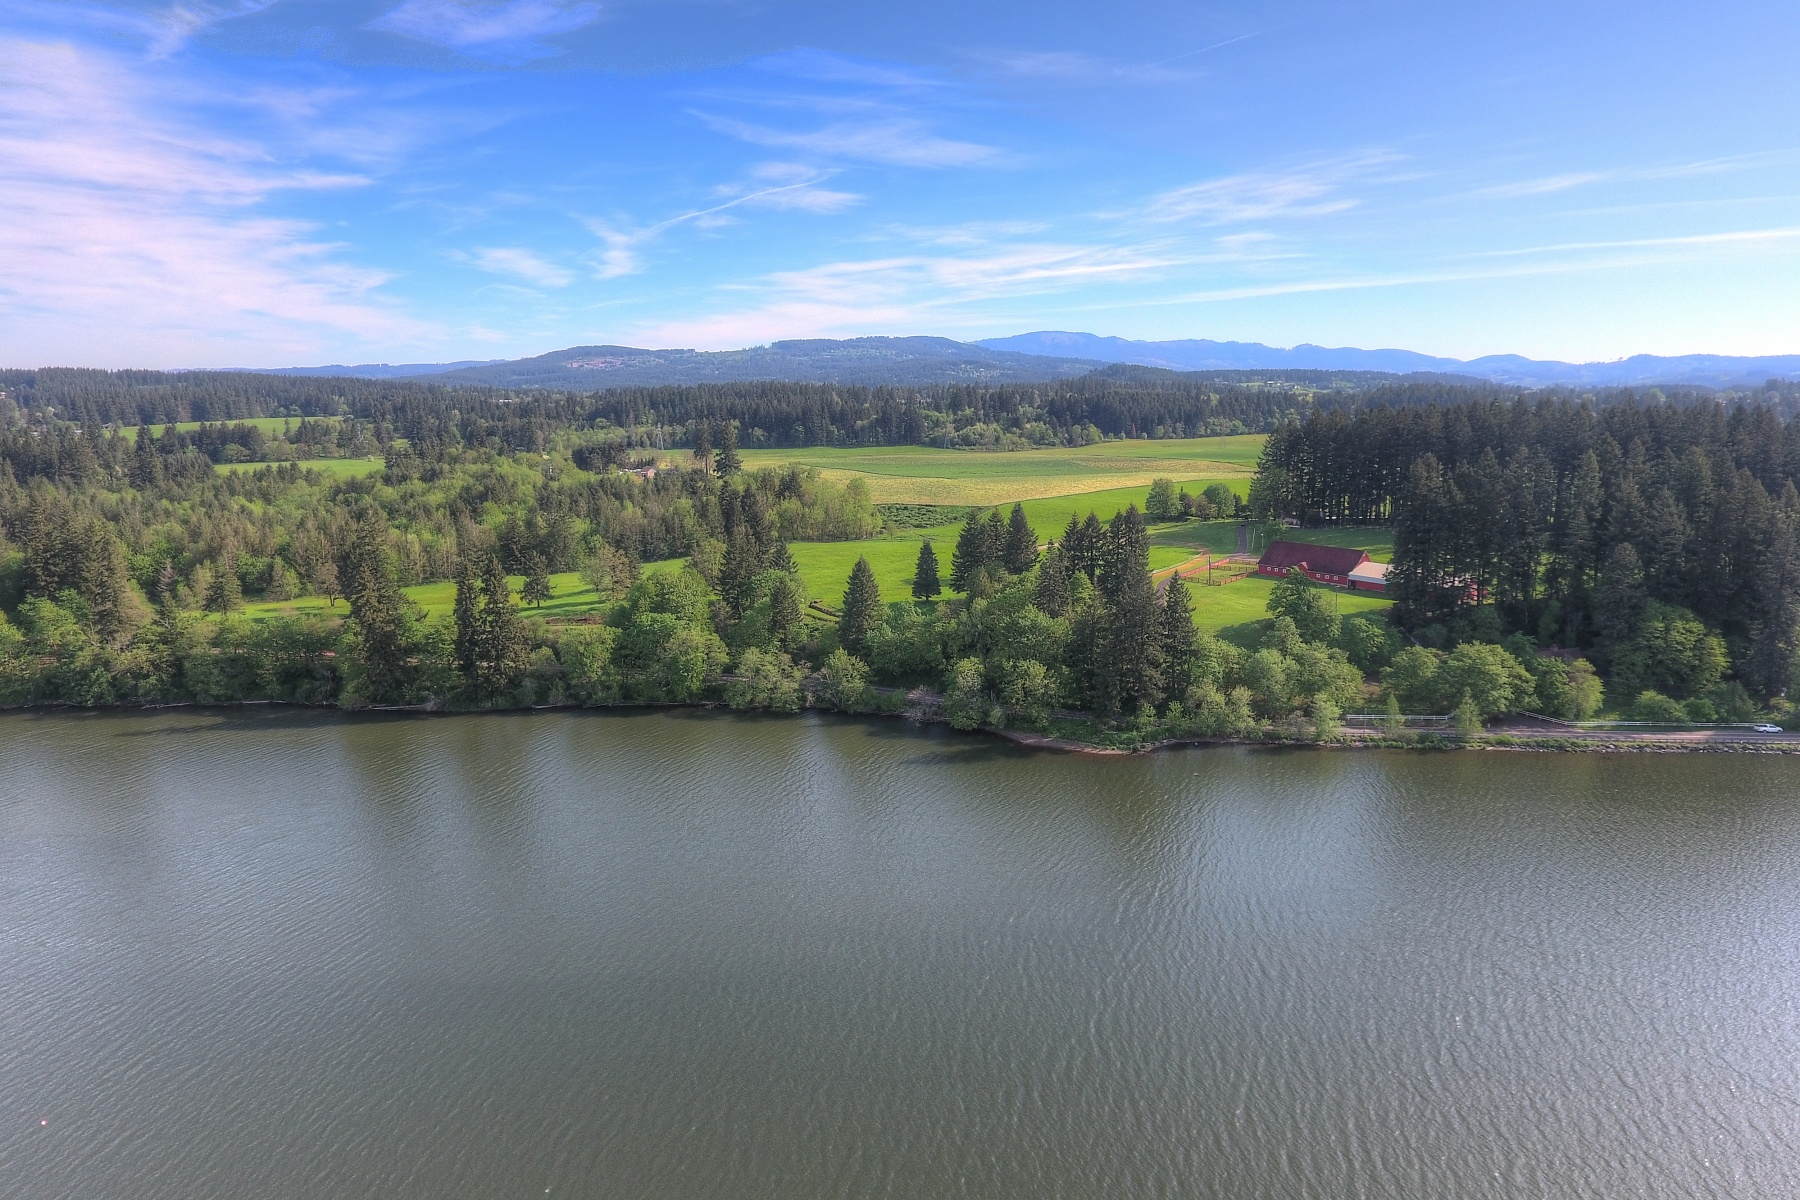 Land for Sale at Lacamas Lake Opportunity 215 SE LEADBETTER RD Camas, Washington 98607 United States